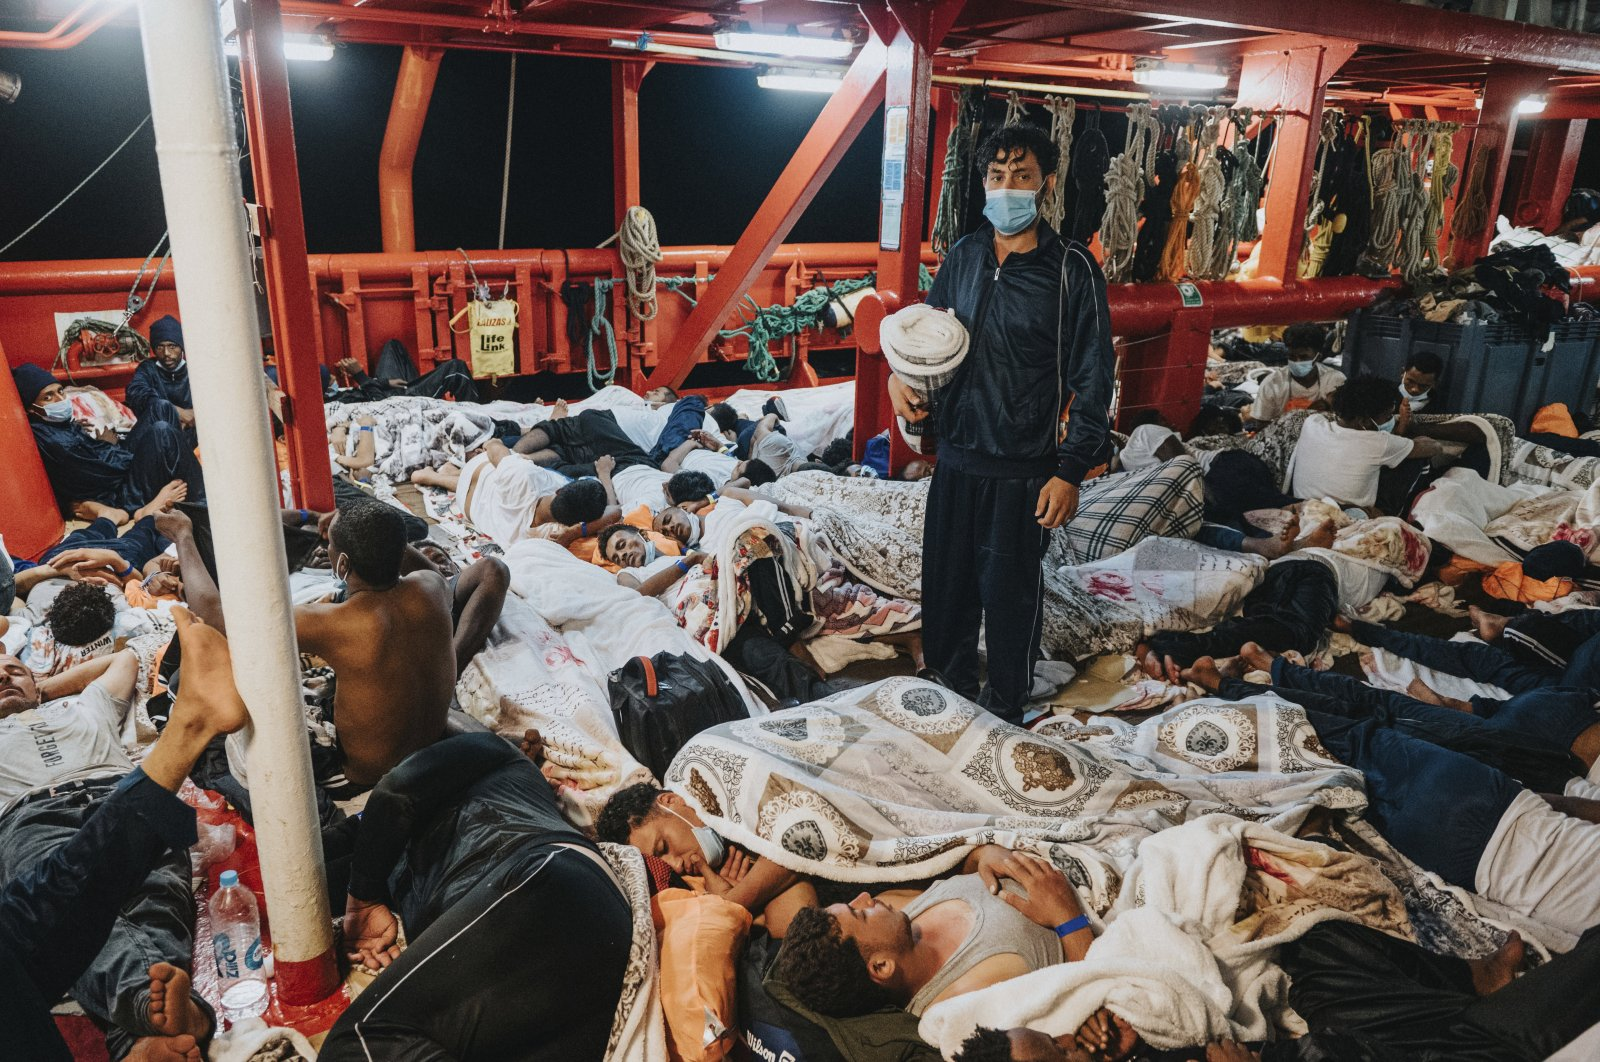 Rescued migrants sleep on the deck of the Ocean Viking rescue ship in the Mediterranean Sea, July 8, 2021. (AP Photo)